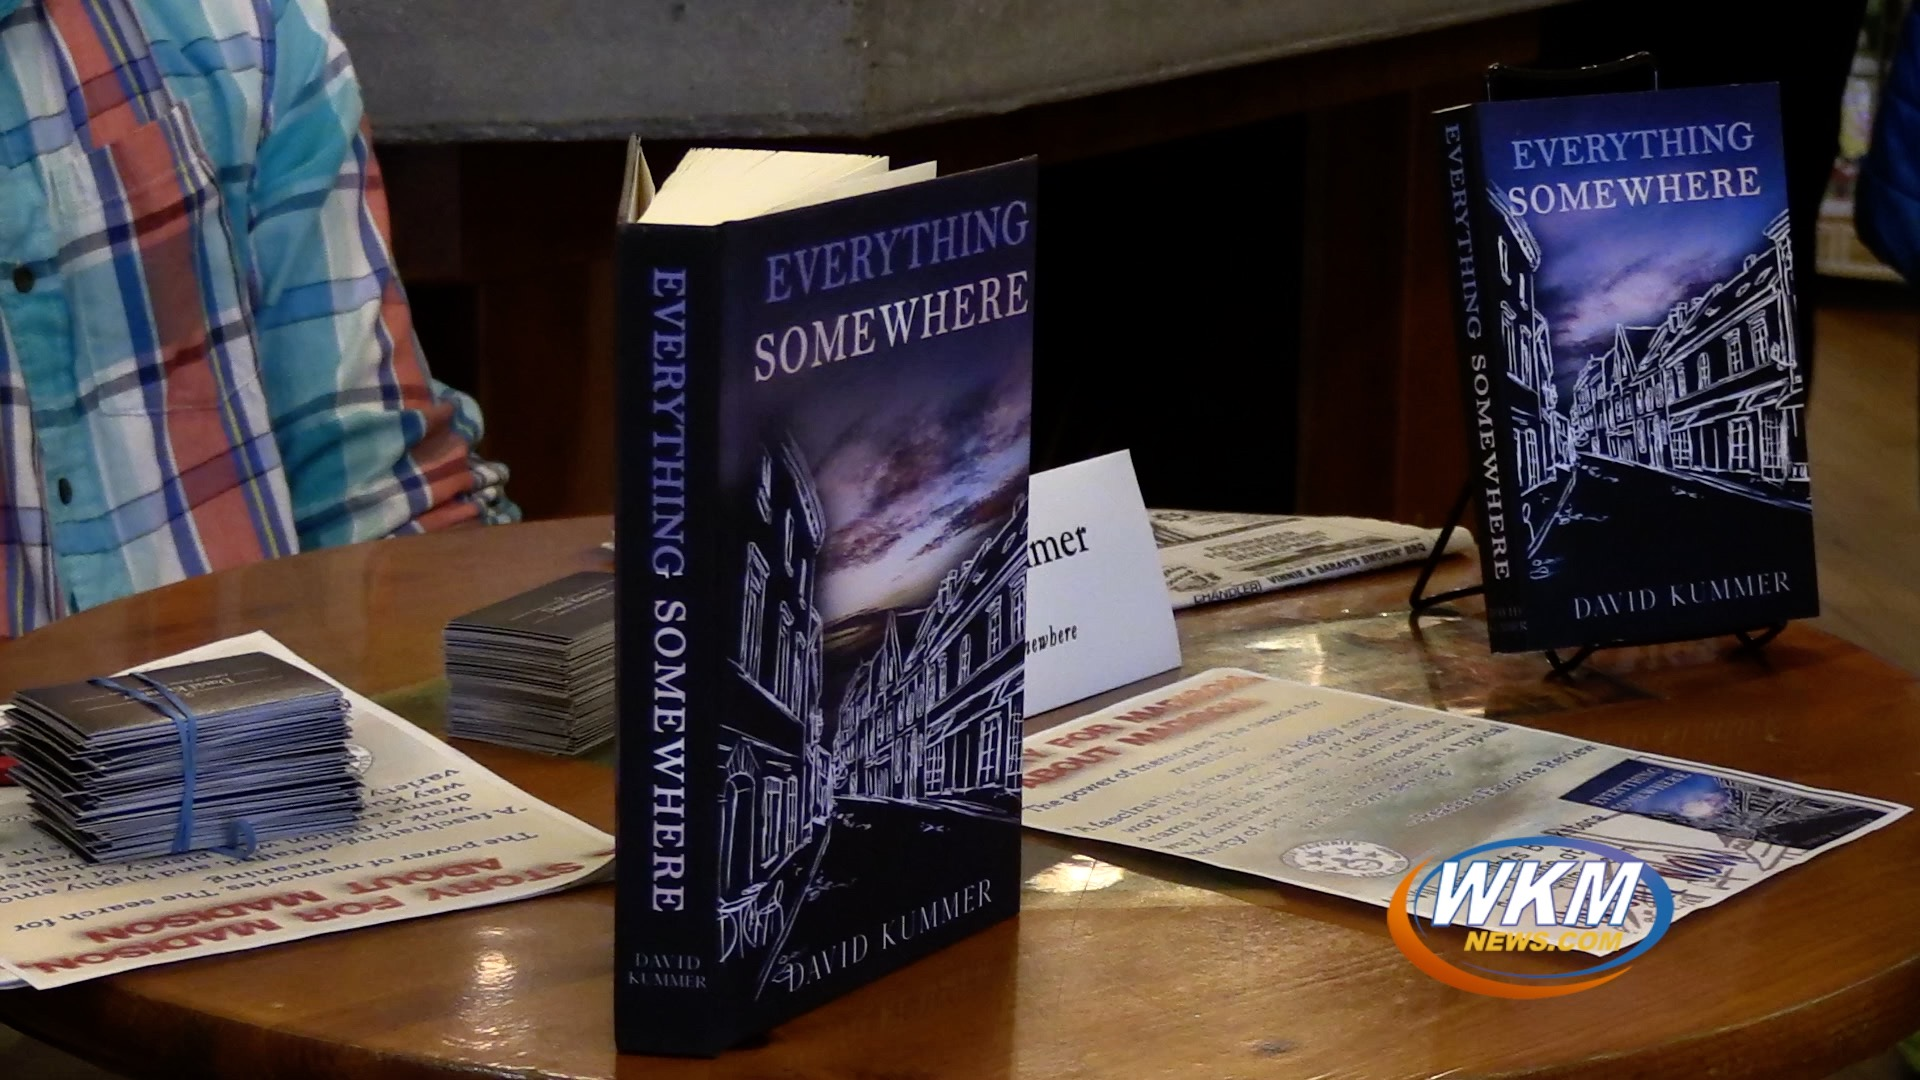 WKM Interviews: Young Author Discusses Popular New Novel